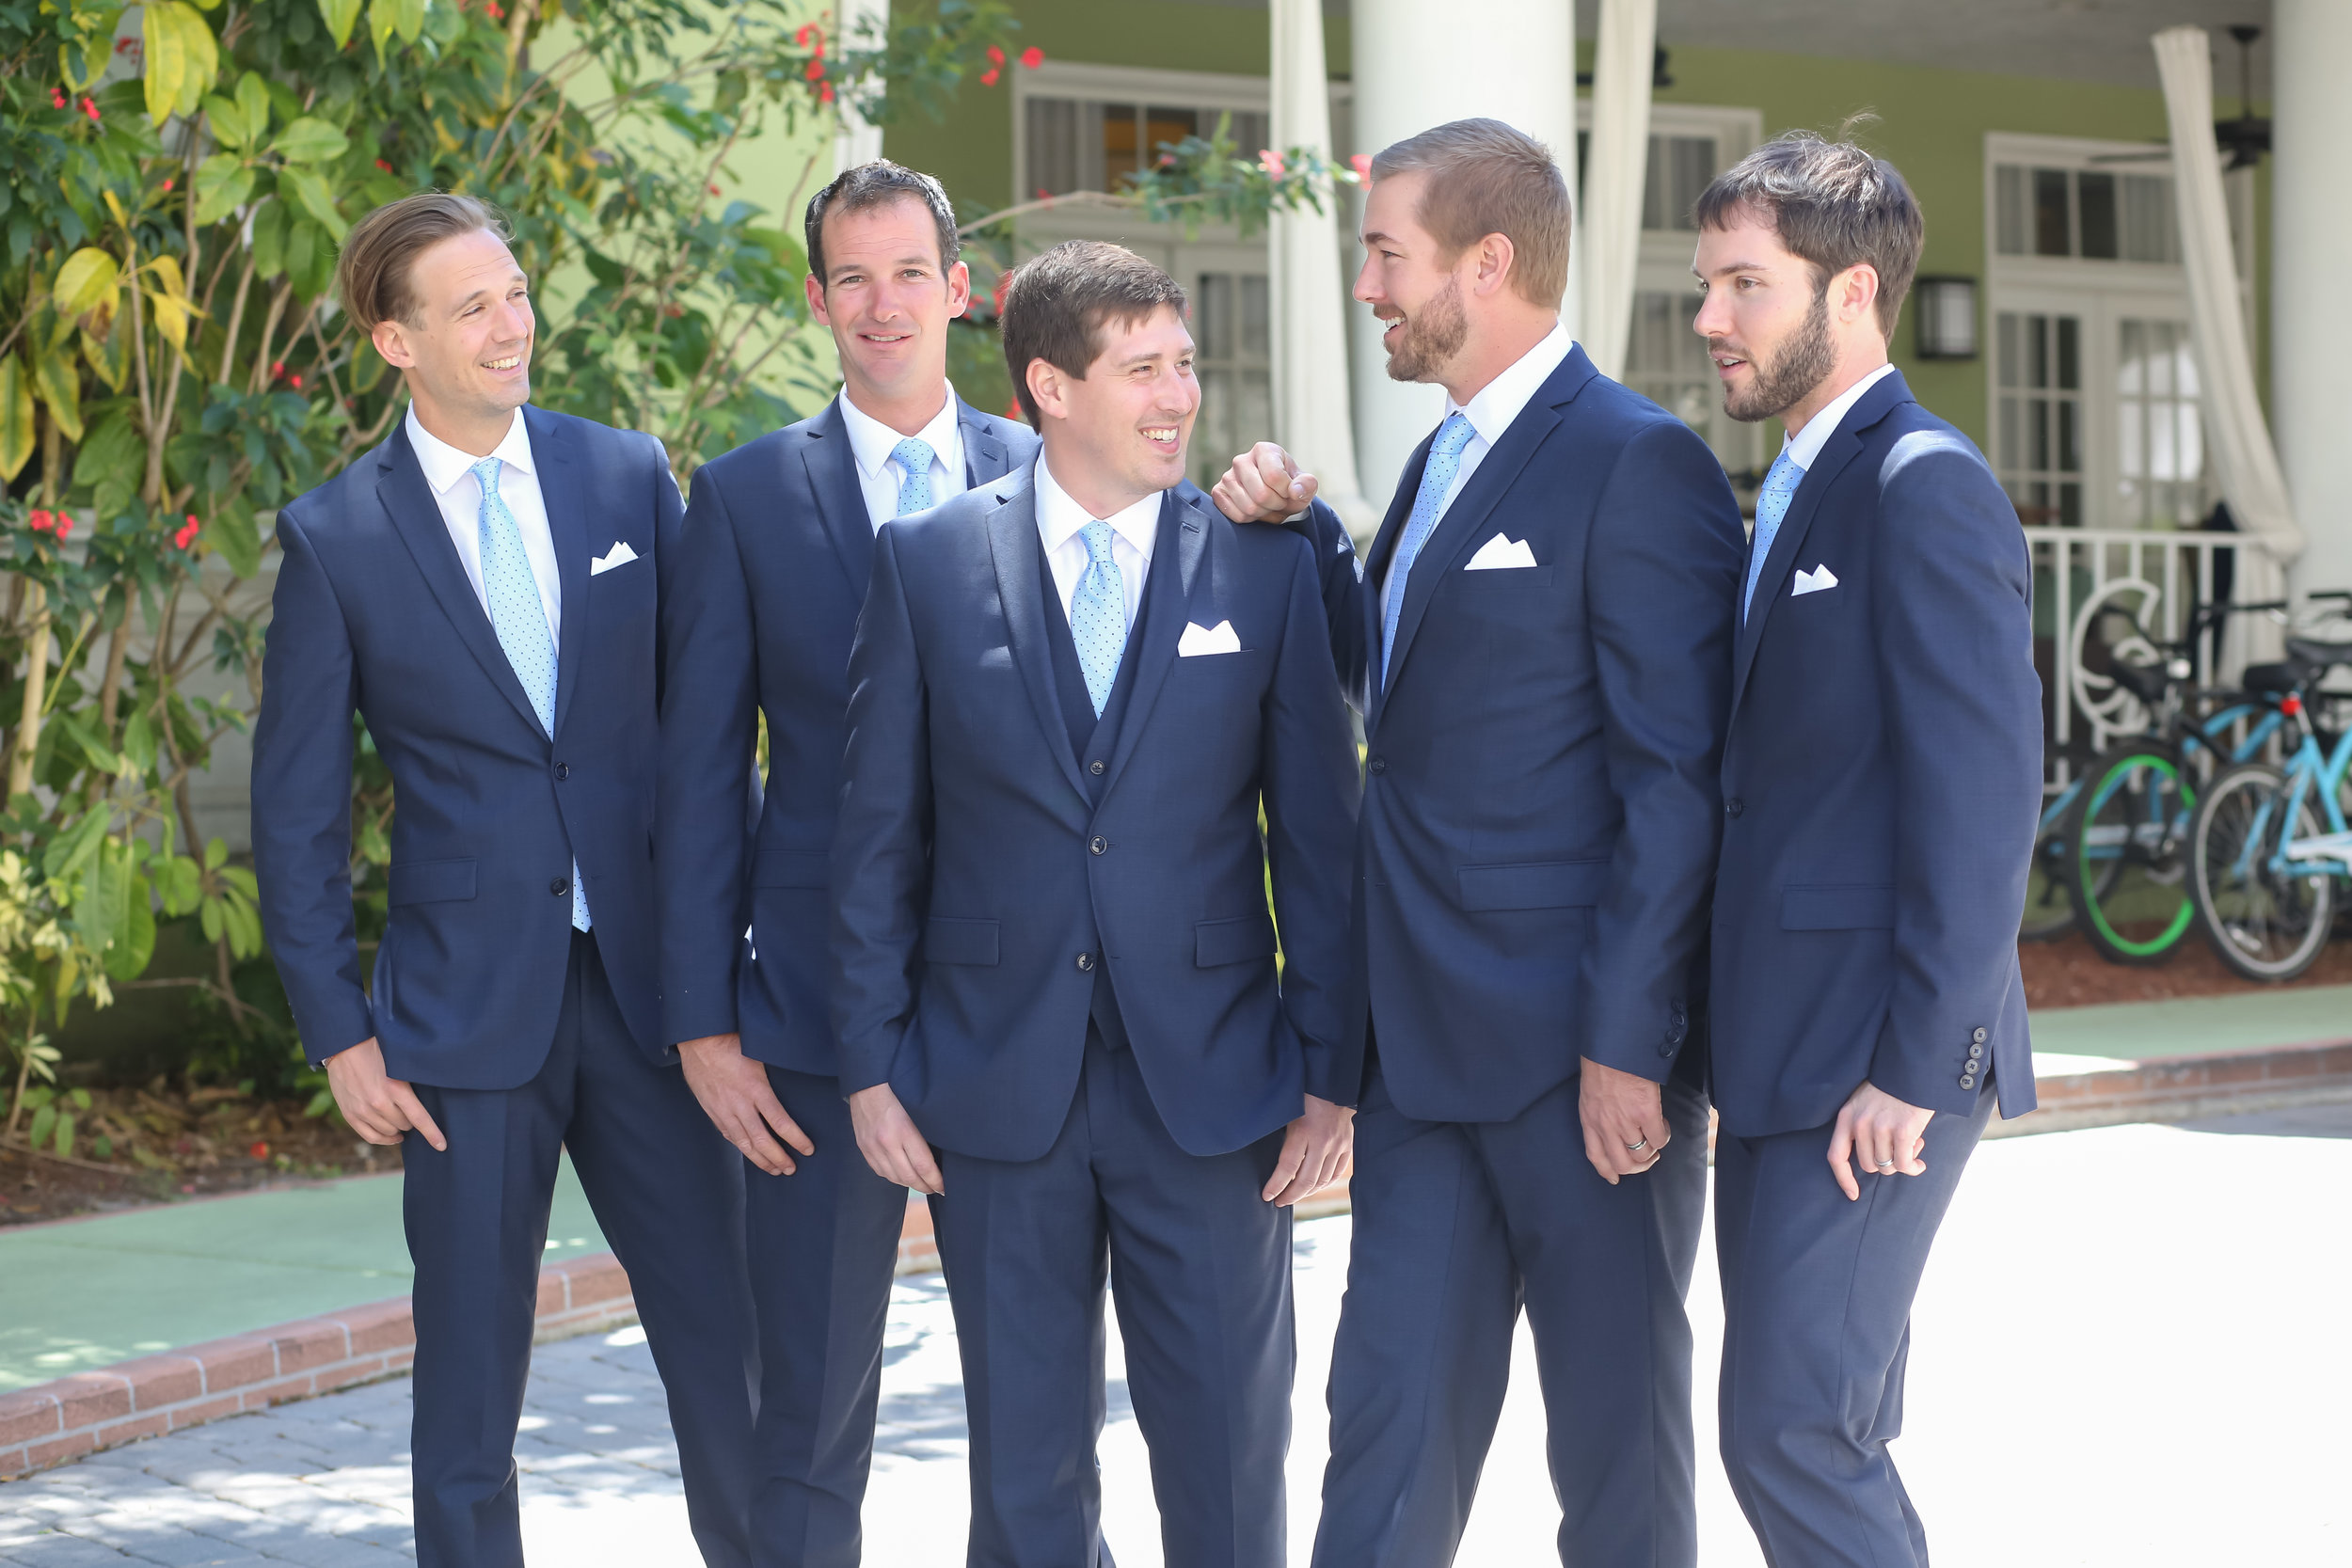 The gentlemen sported navy suits with soft blue and white adornments.